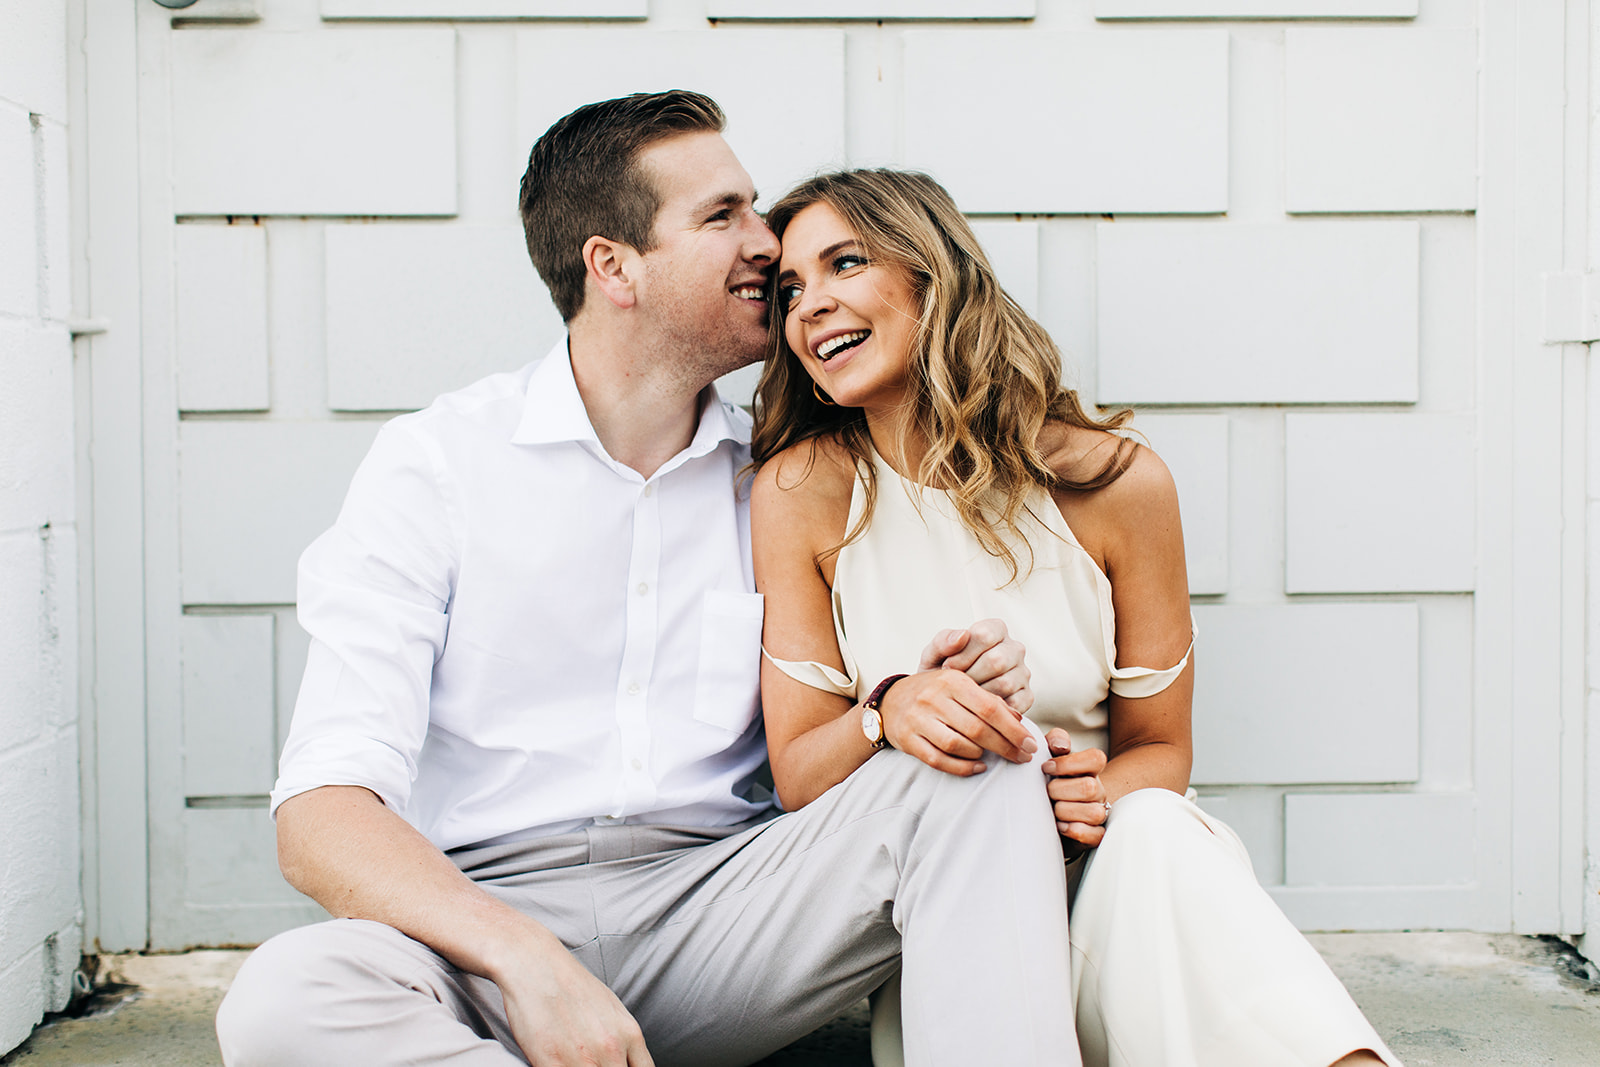 Paulina-Drew_Palm-Springs-Engagement-Photos_Clarisse-Rae_Southern-California-Wedding-Photographer-19